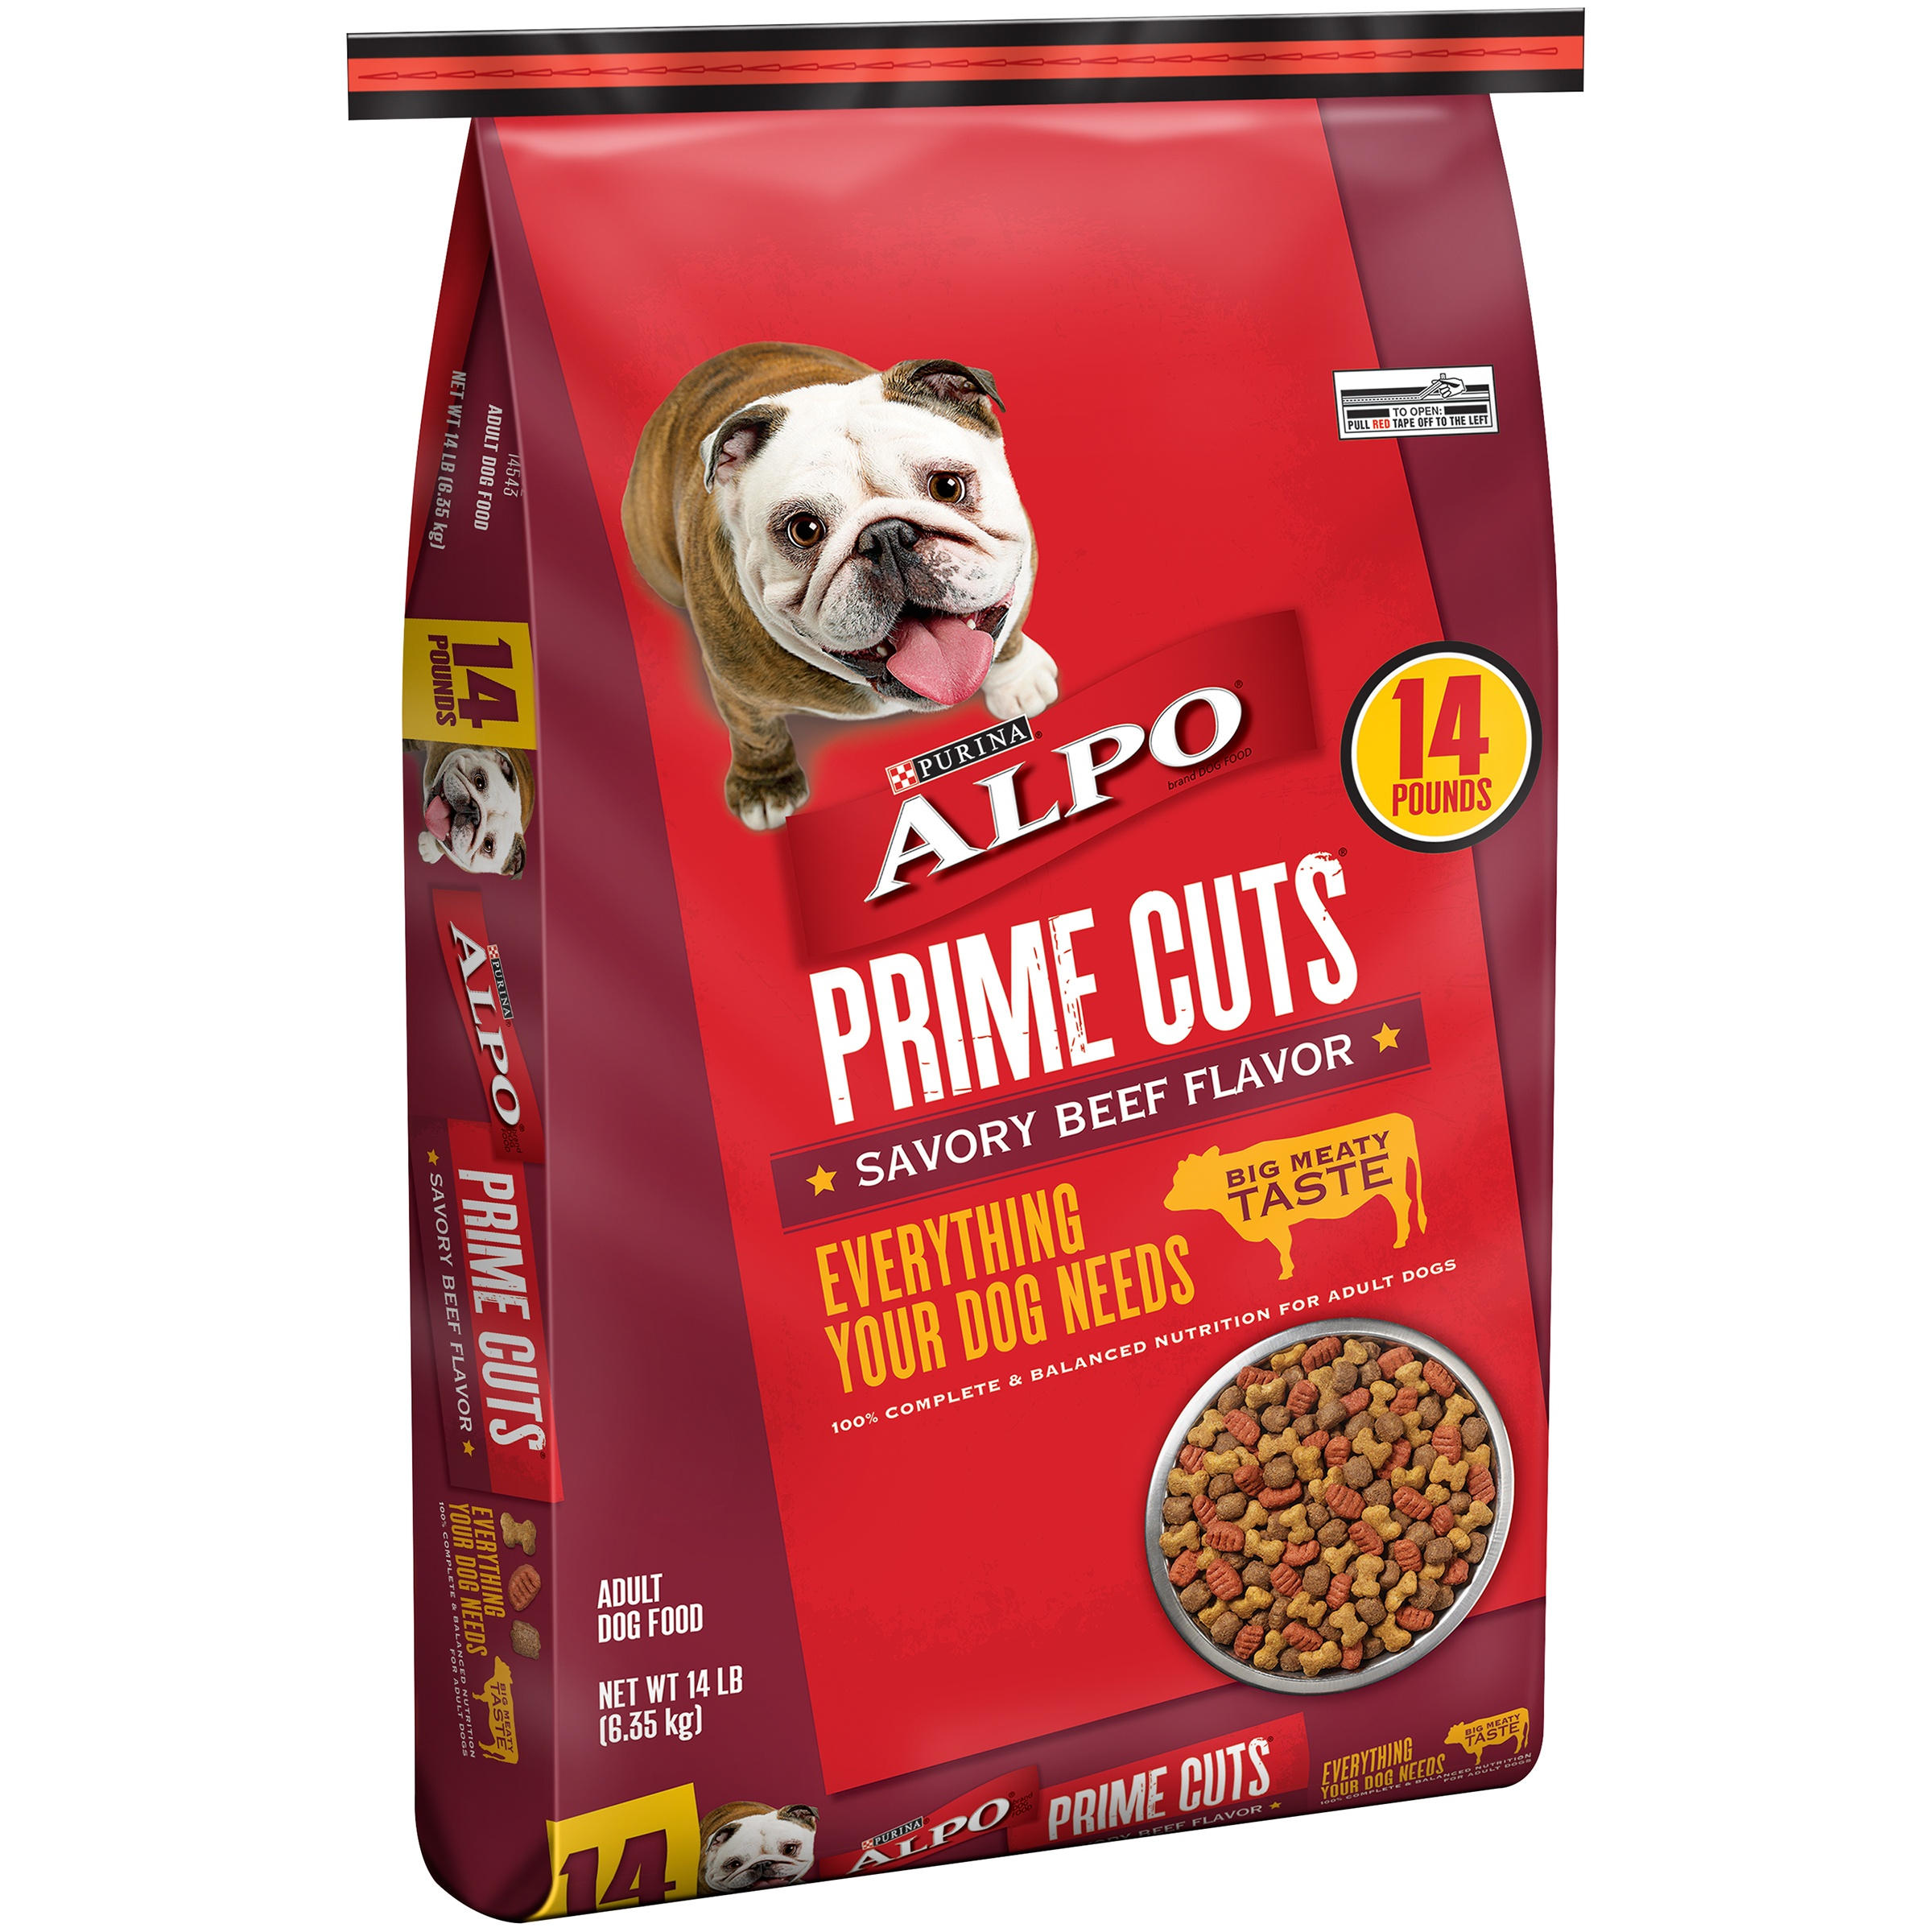 ALPO Prime Cuts Savory Beef Flavor Dog Food 14 lb. Bag